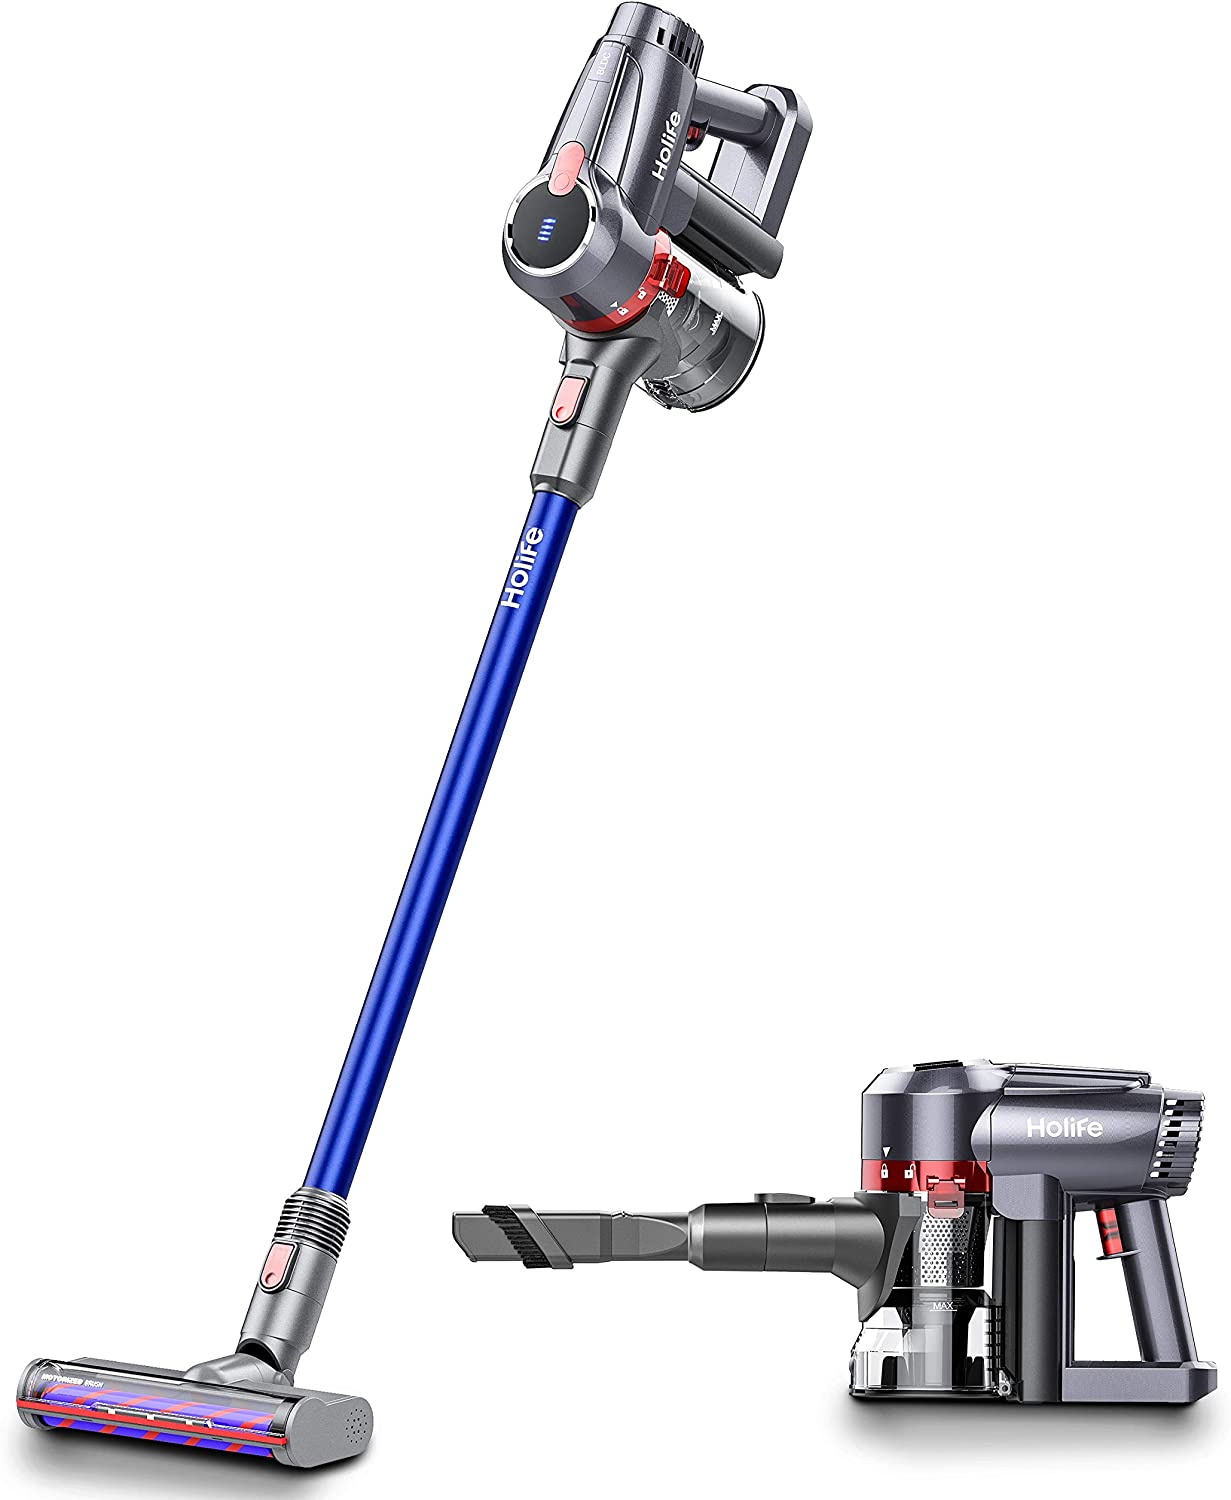 Holife Handheld Upright, 2 in 1 Cordless Stick Rechargeable Vacuum Cleaner, Hand held Vac with High Power & Long Lasting with 18.5V Li ion Battery,